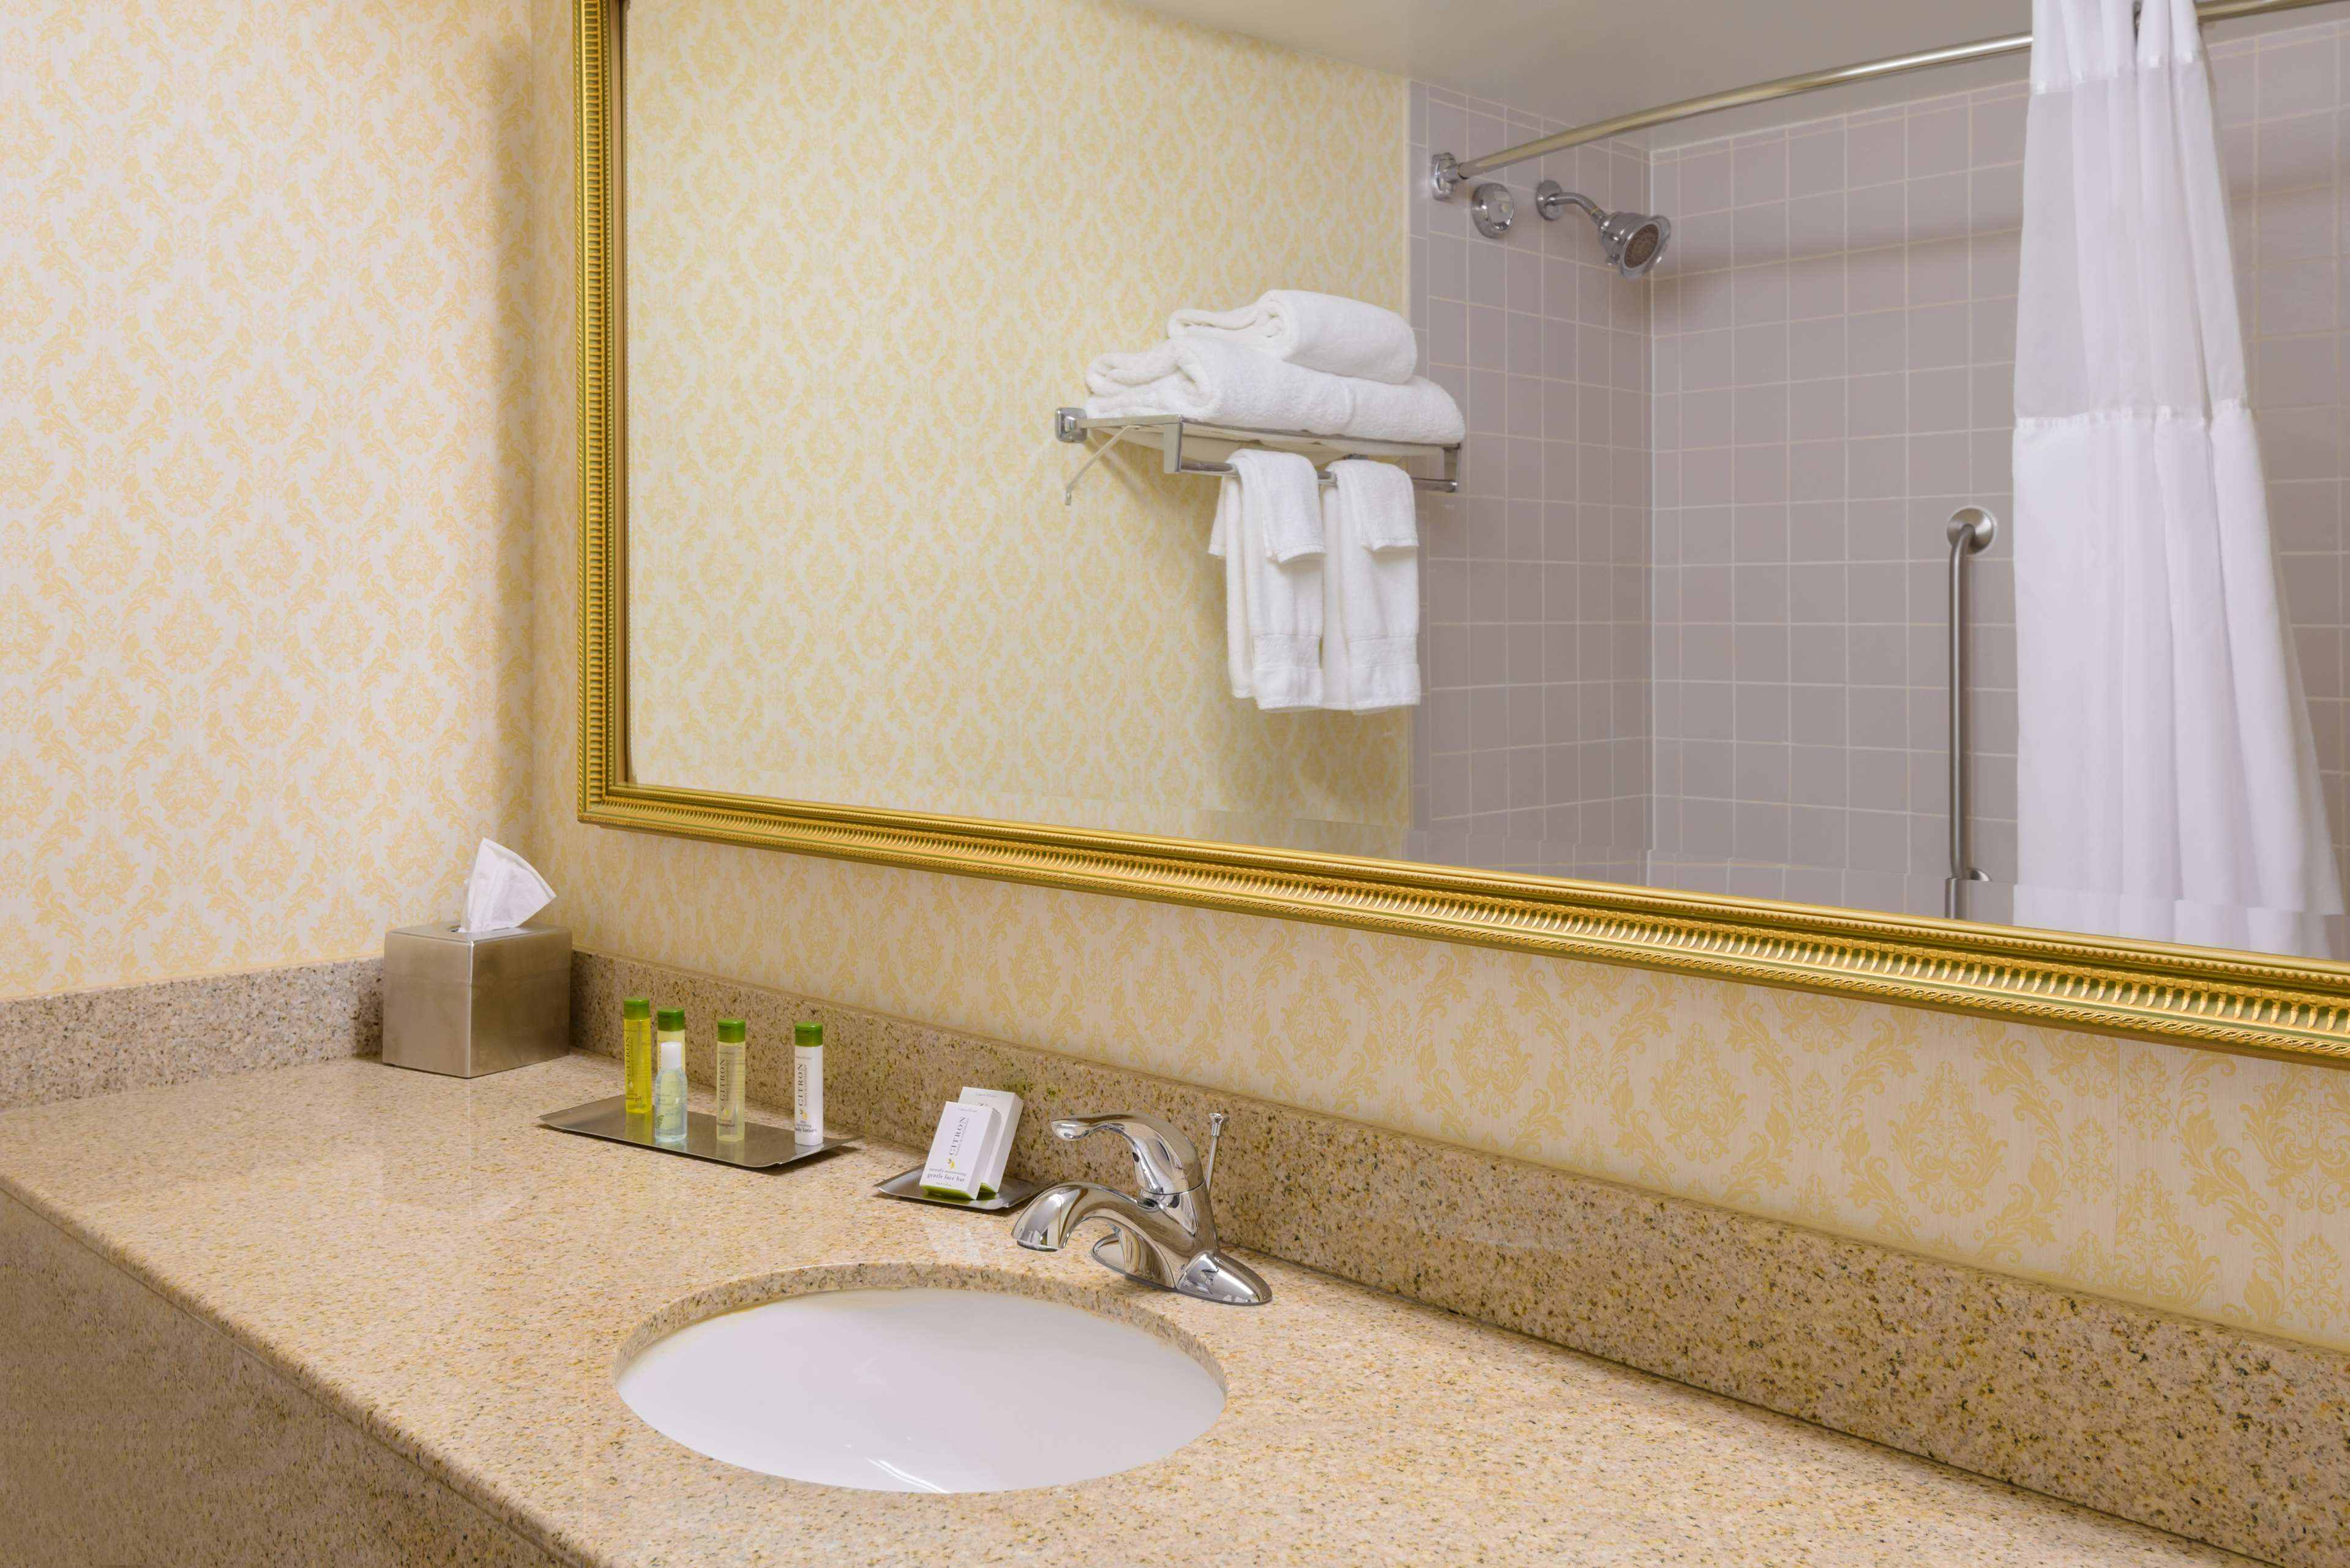 DoubleTree by Hilton Hotel Richmond - Midlothian image 7